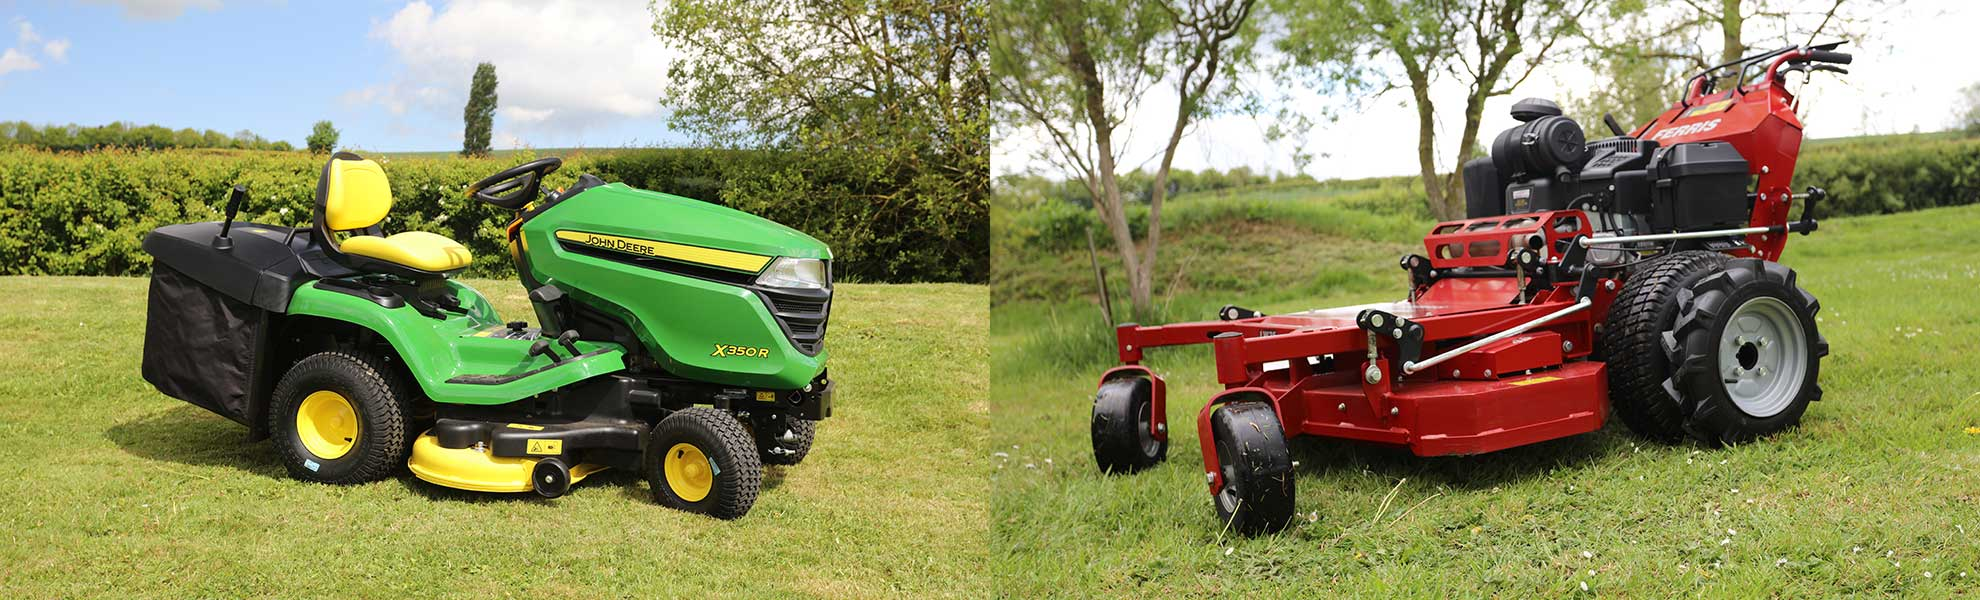 2 garden machines, showing range of mowers available from oxston Groundcare